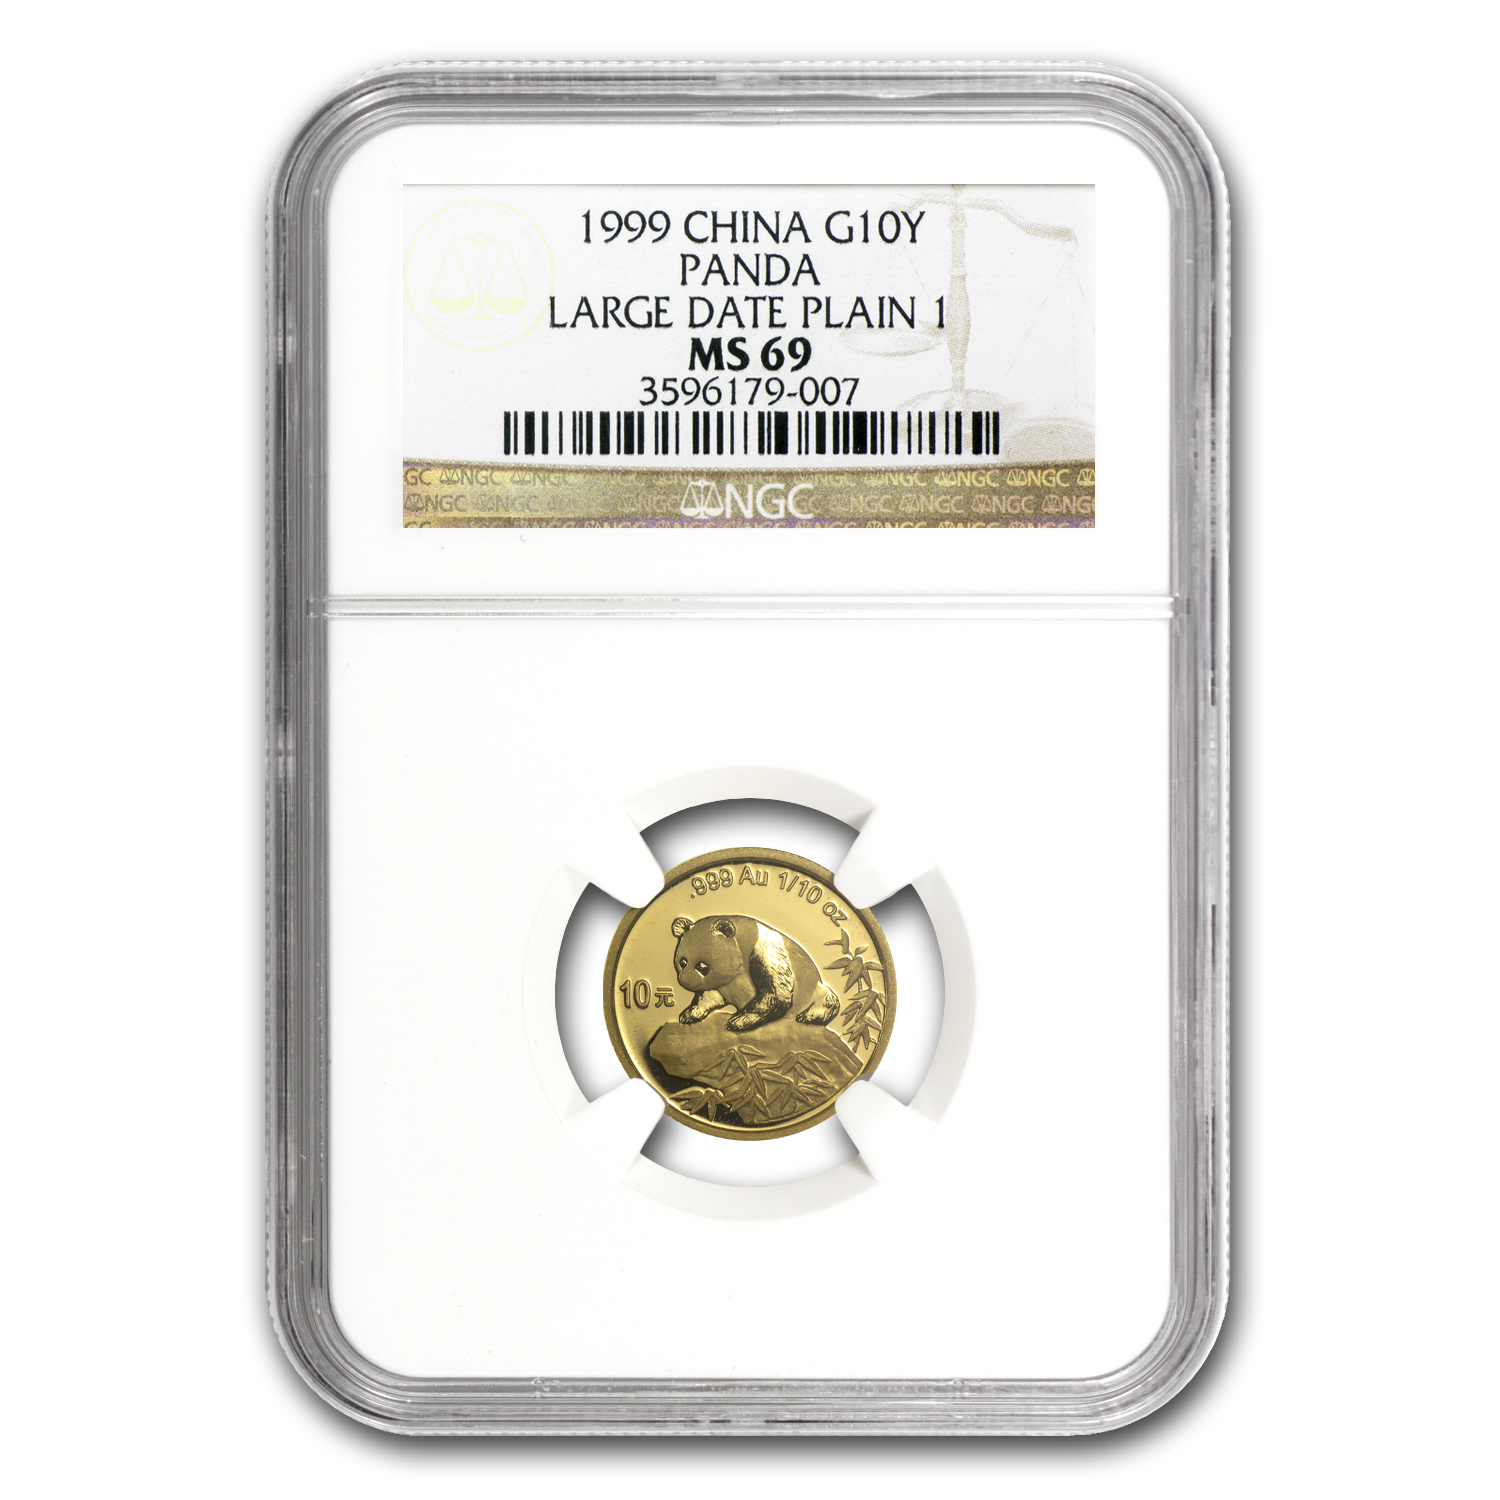 1999 1/10 oz Gold Chinese Panda Large Date/Plain 1 MS-69 NGC